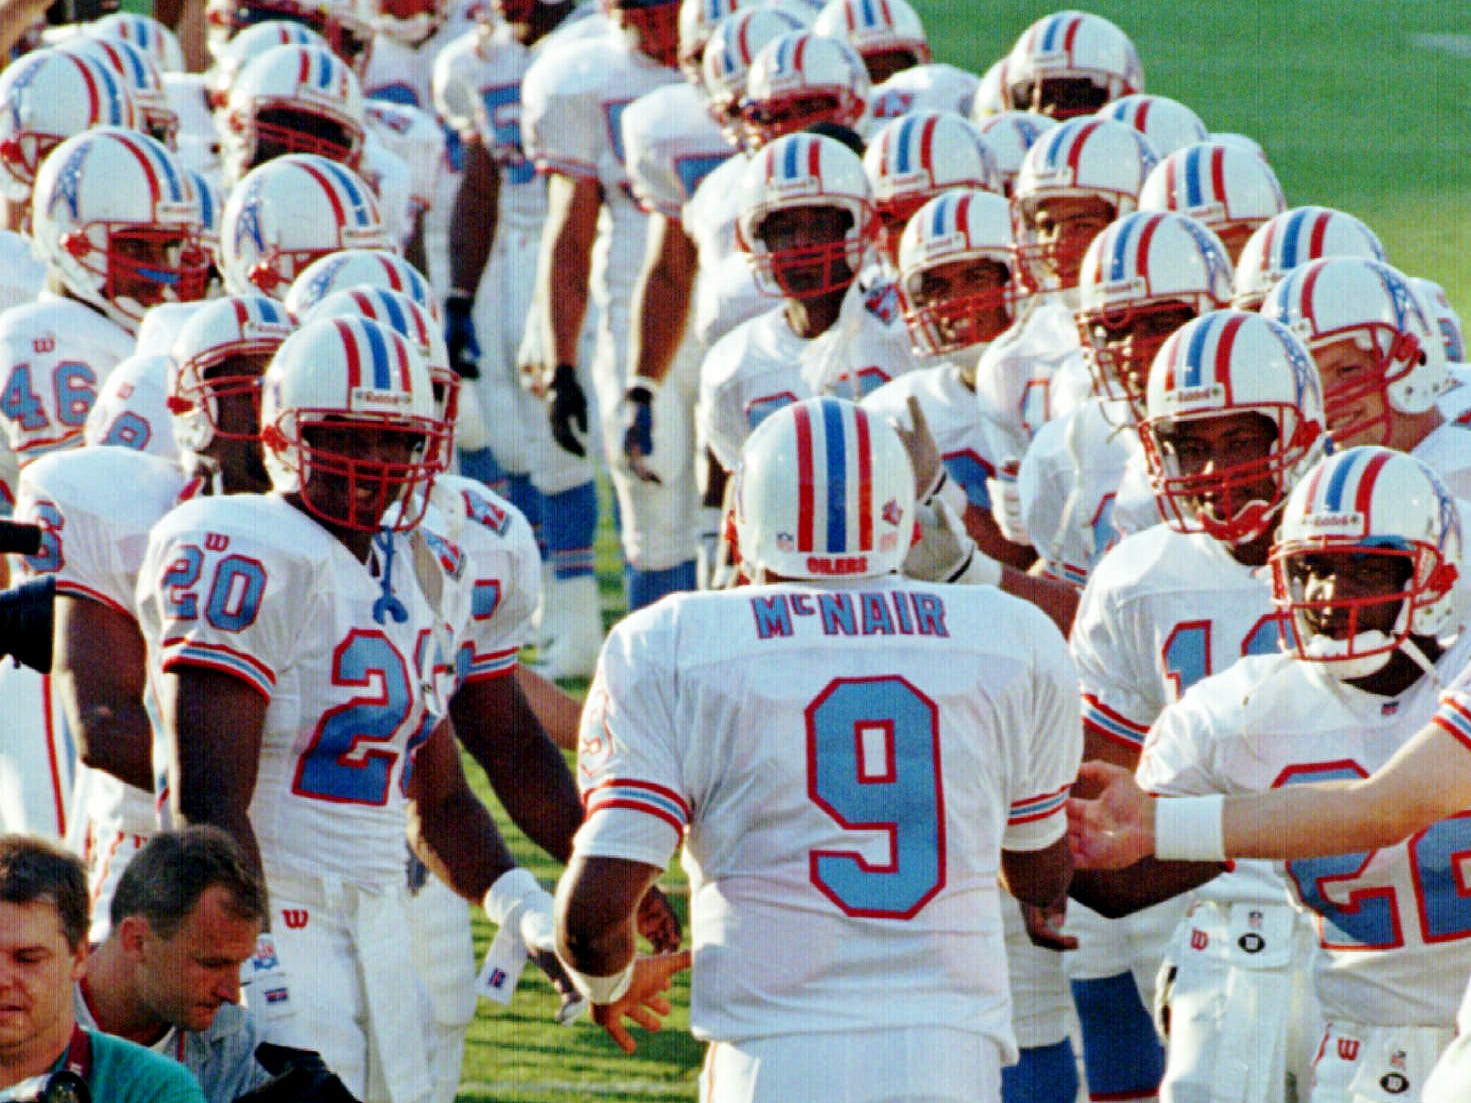 Tennessee Oilers quarterback Steve McNair (9) runs through a tunnel formed by his teammates as he is introduces before the team's first game in their new state, a pre-season game Aug. 2, 1997. The Oilers are playing the New Orleans Saints in Memphis, where they will play their first two seasons before moving into their new stadium in Nashville.